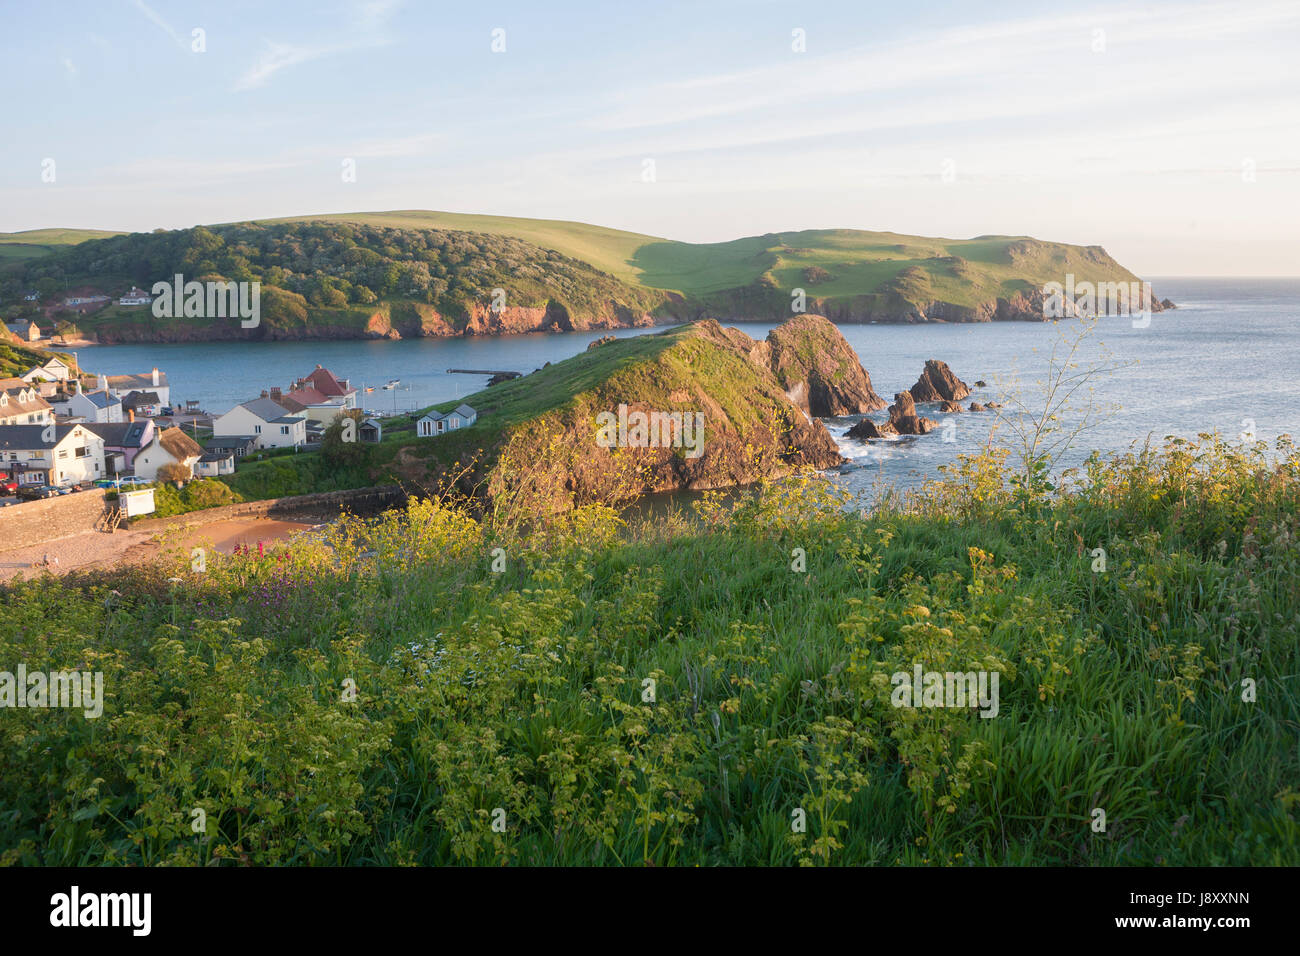 Shippen Beach, Outer Hope, Hope Cove, South Hams, South Devon, England, UK Stock Photo